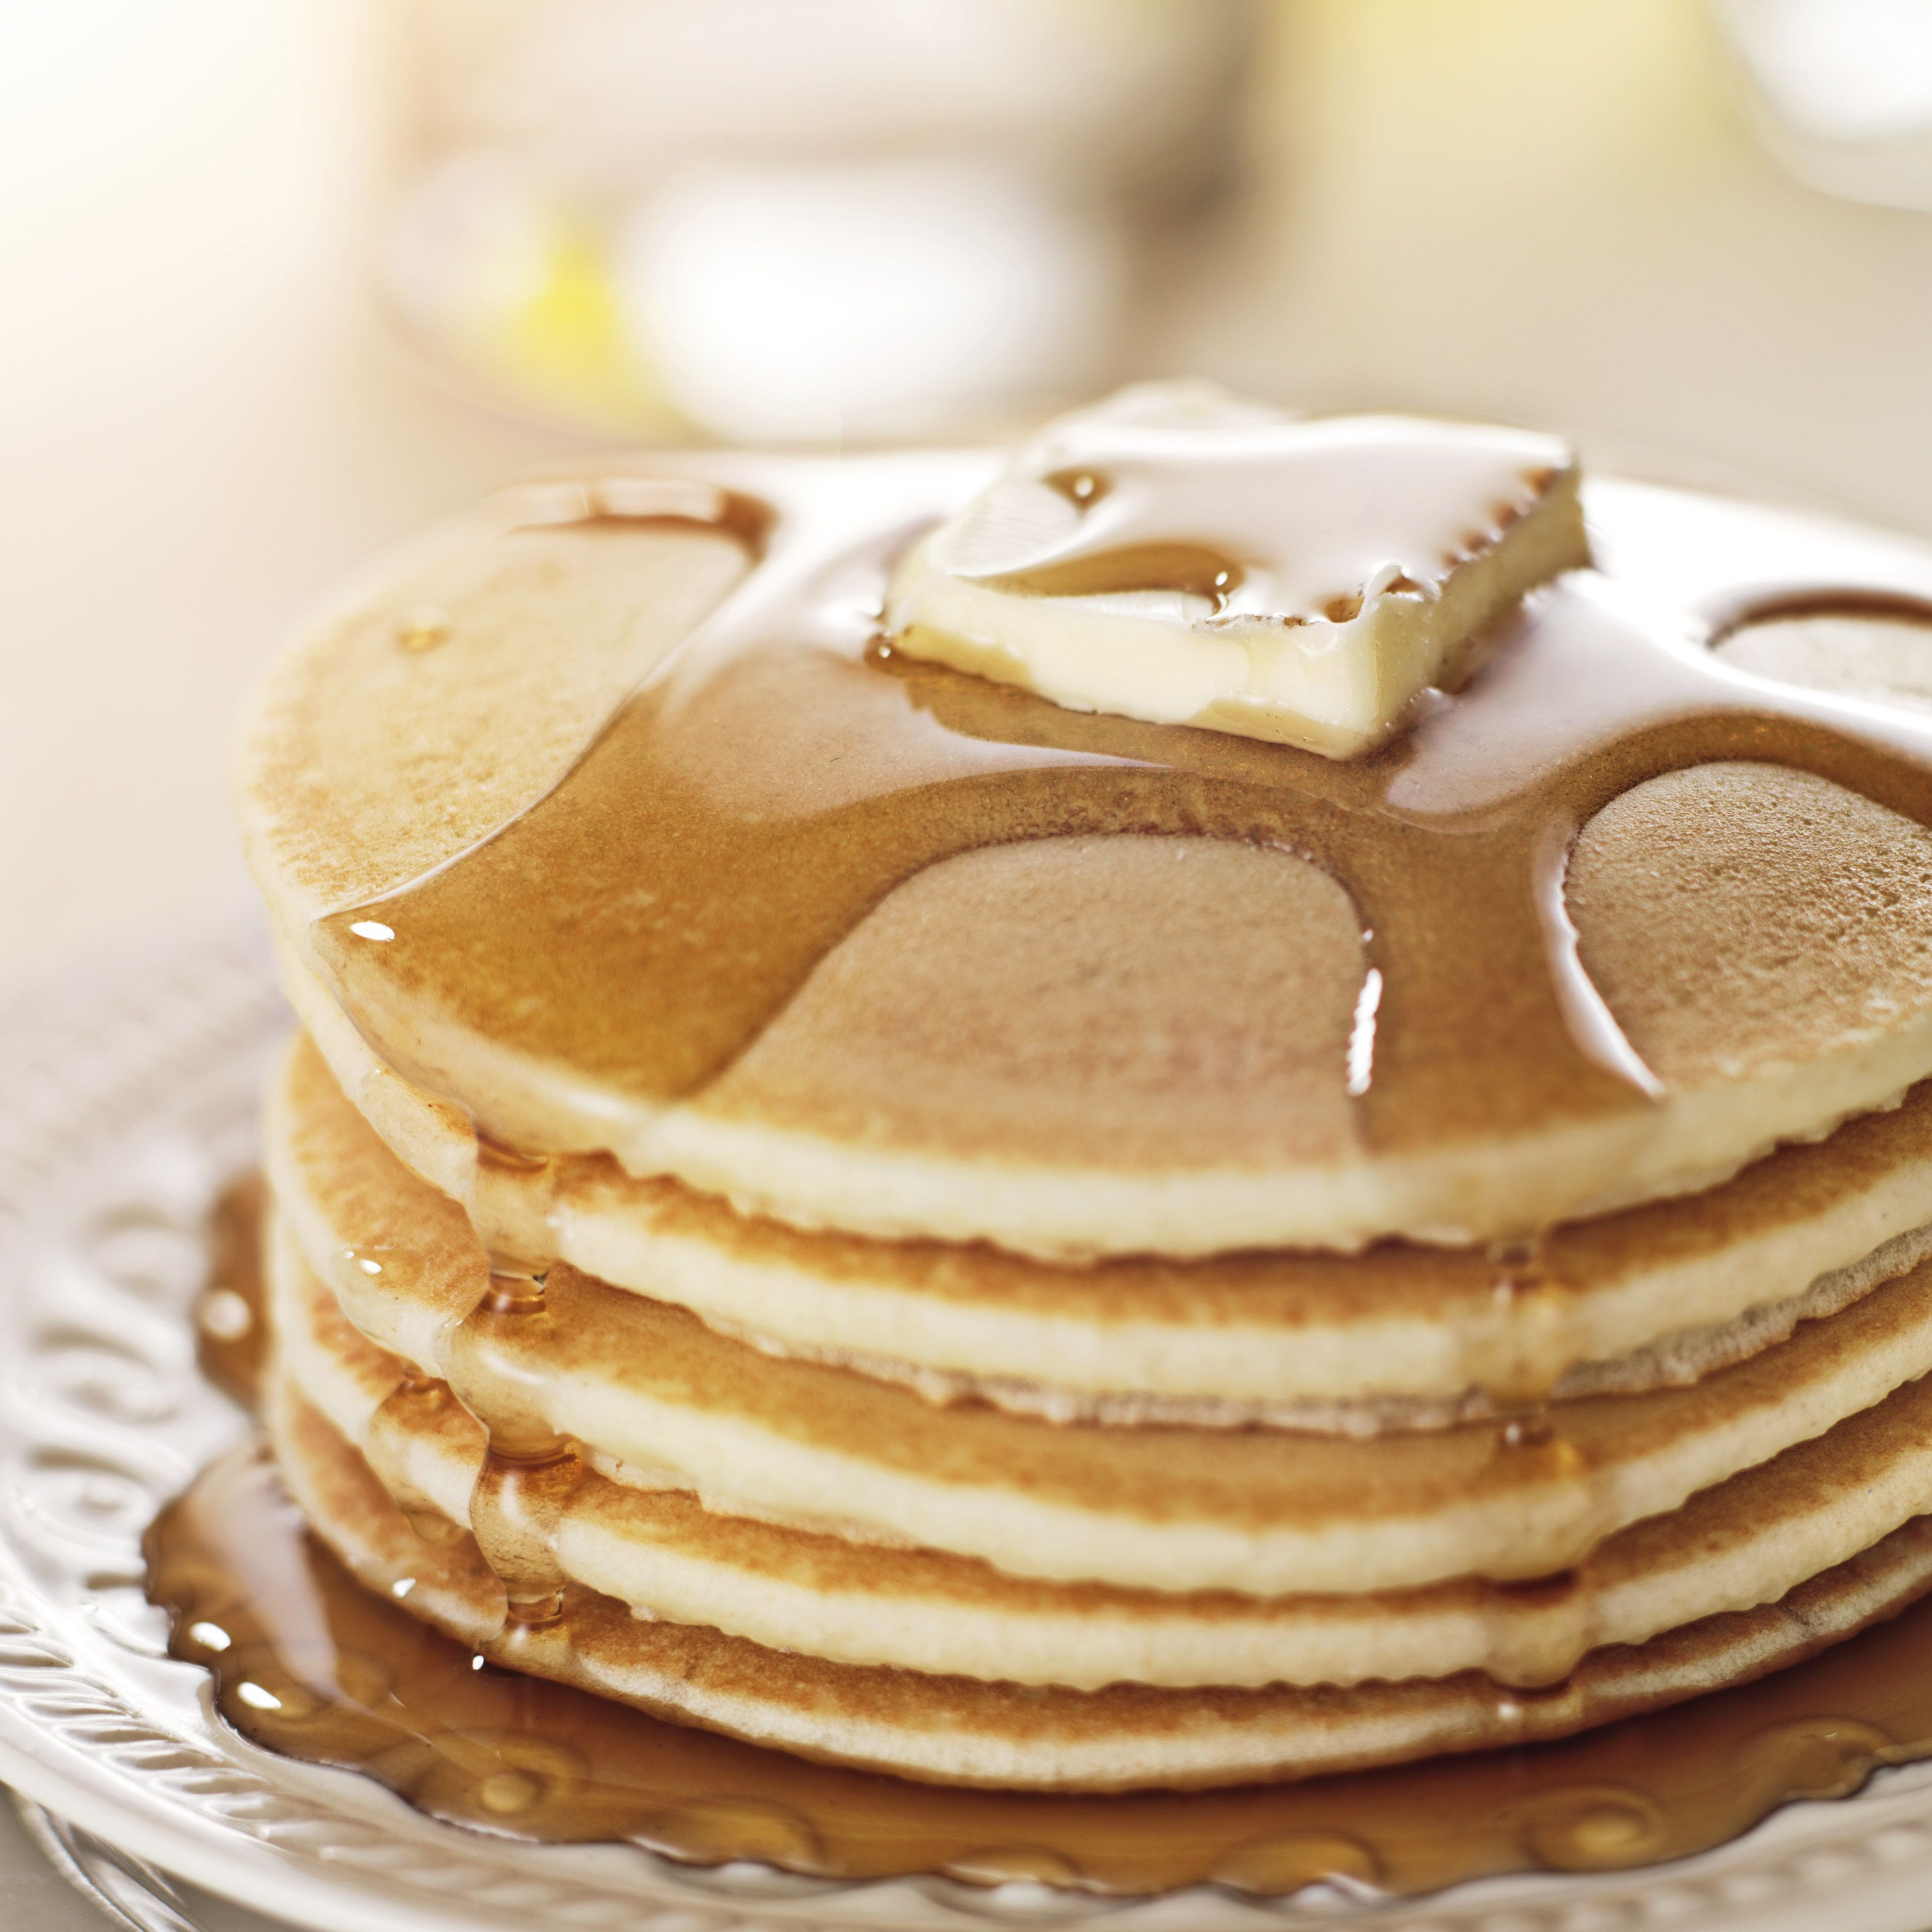 close up photo of a  stack of pancakes with syrup and butter. Shot with selective focus